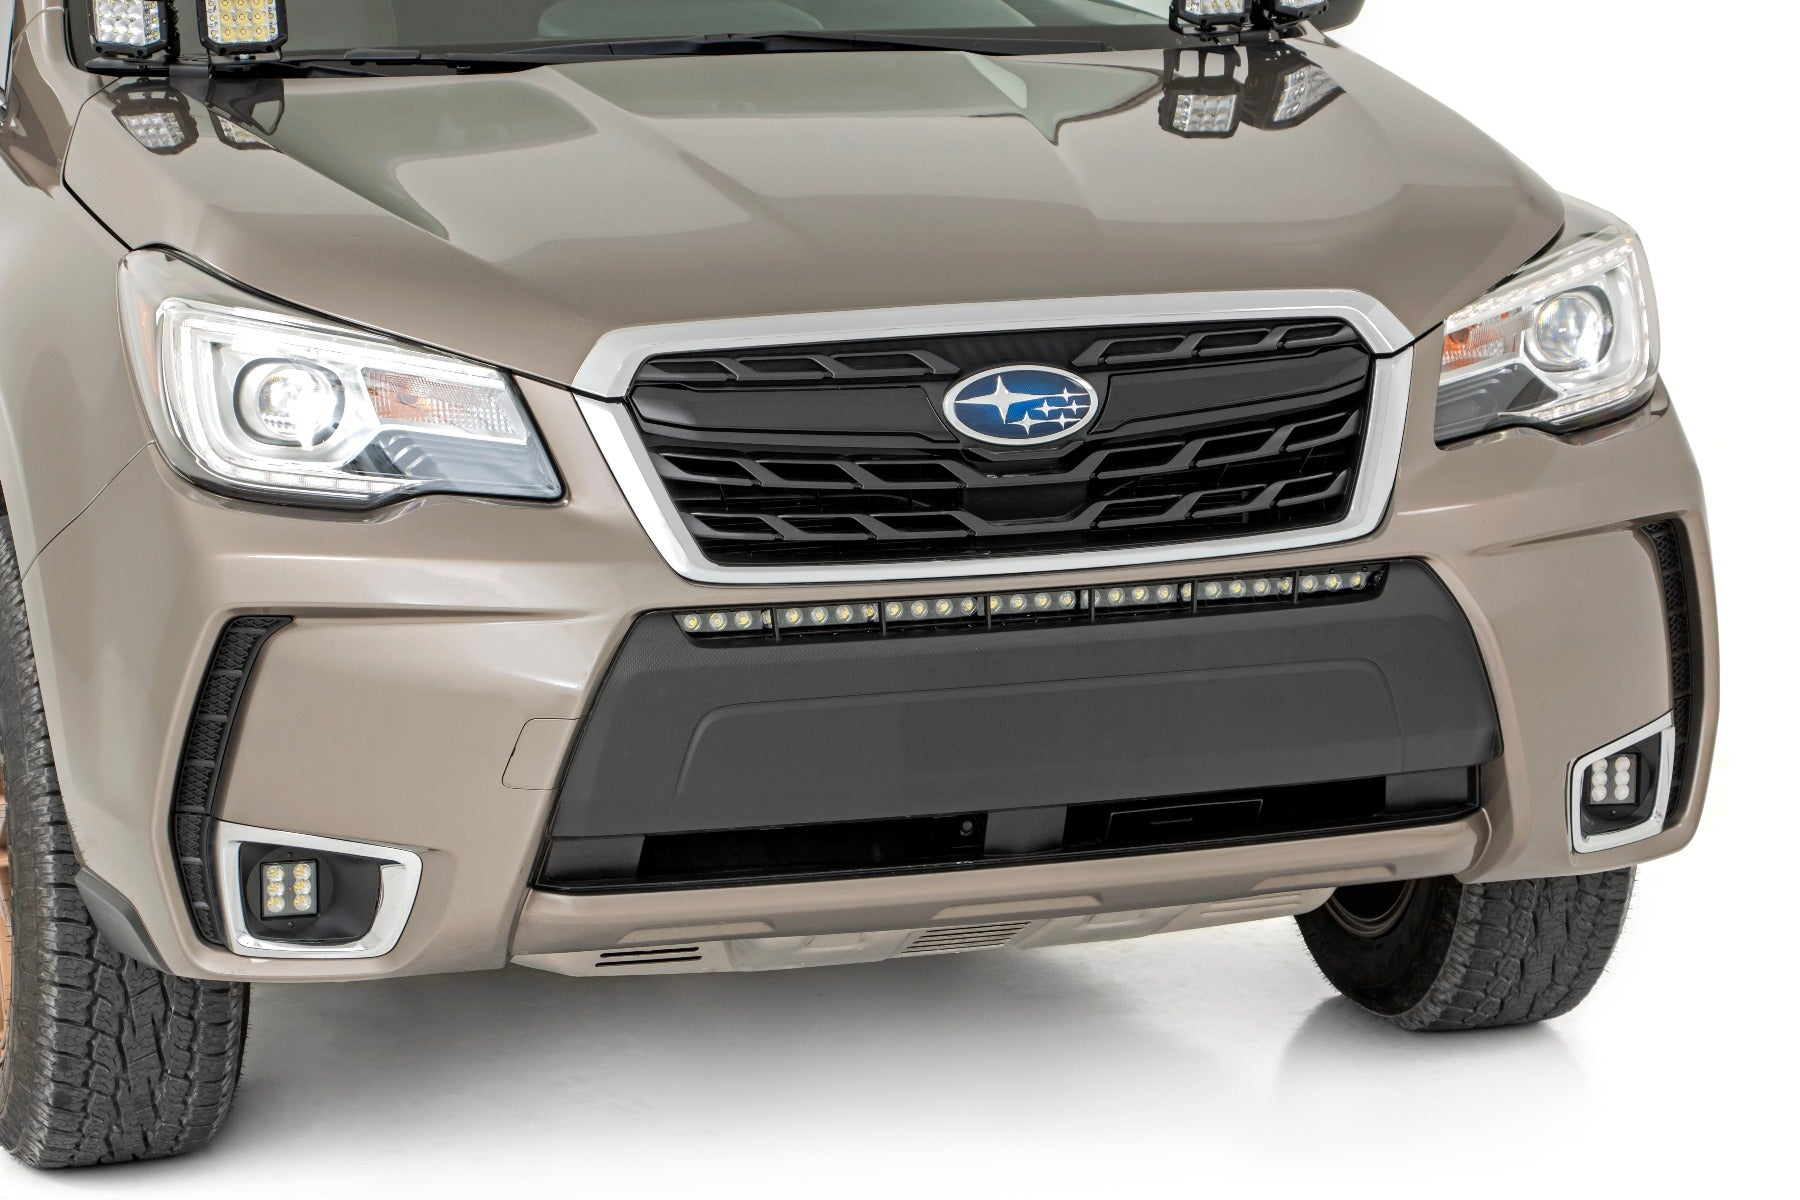 Subaru Led Fog Light Kit Flood Beam (14-18 Forester)